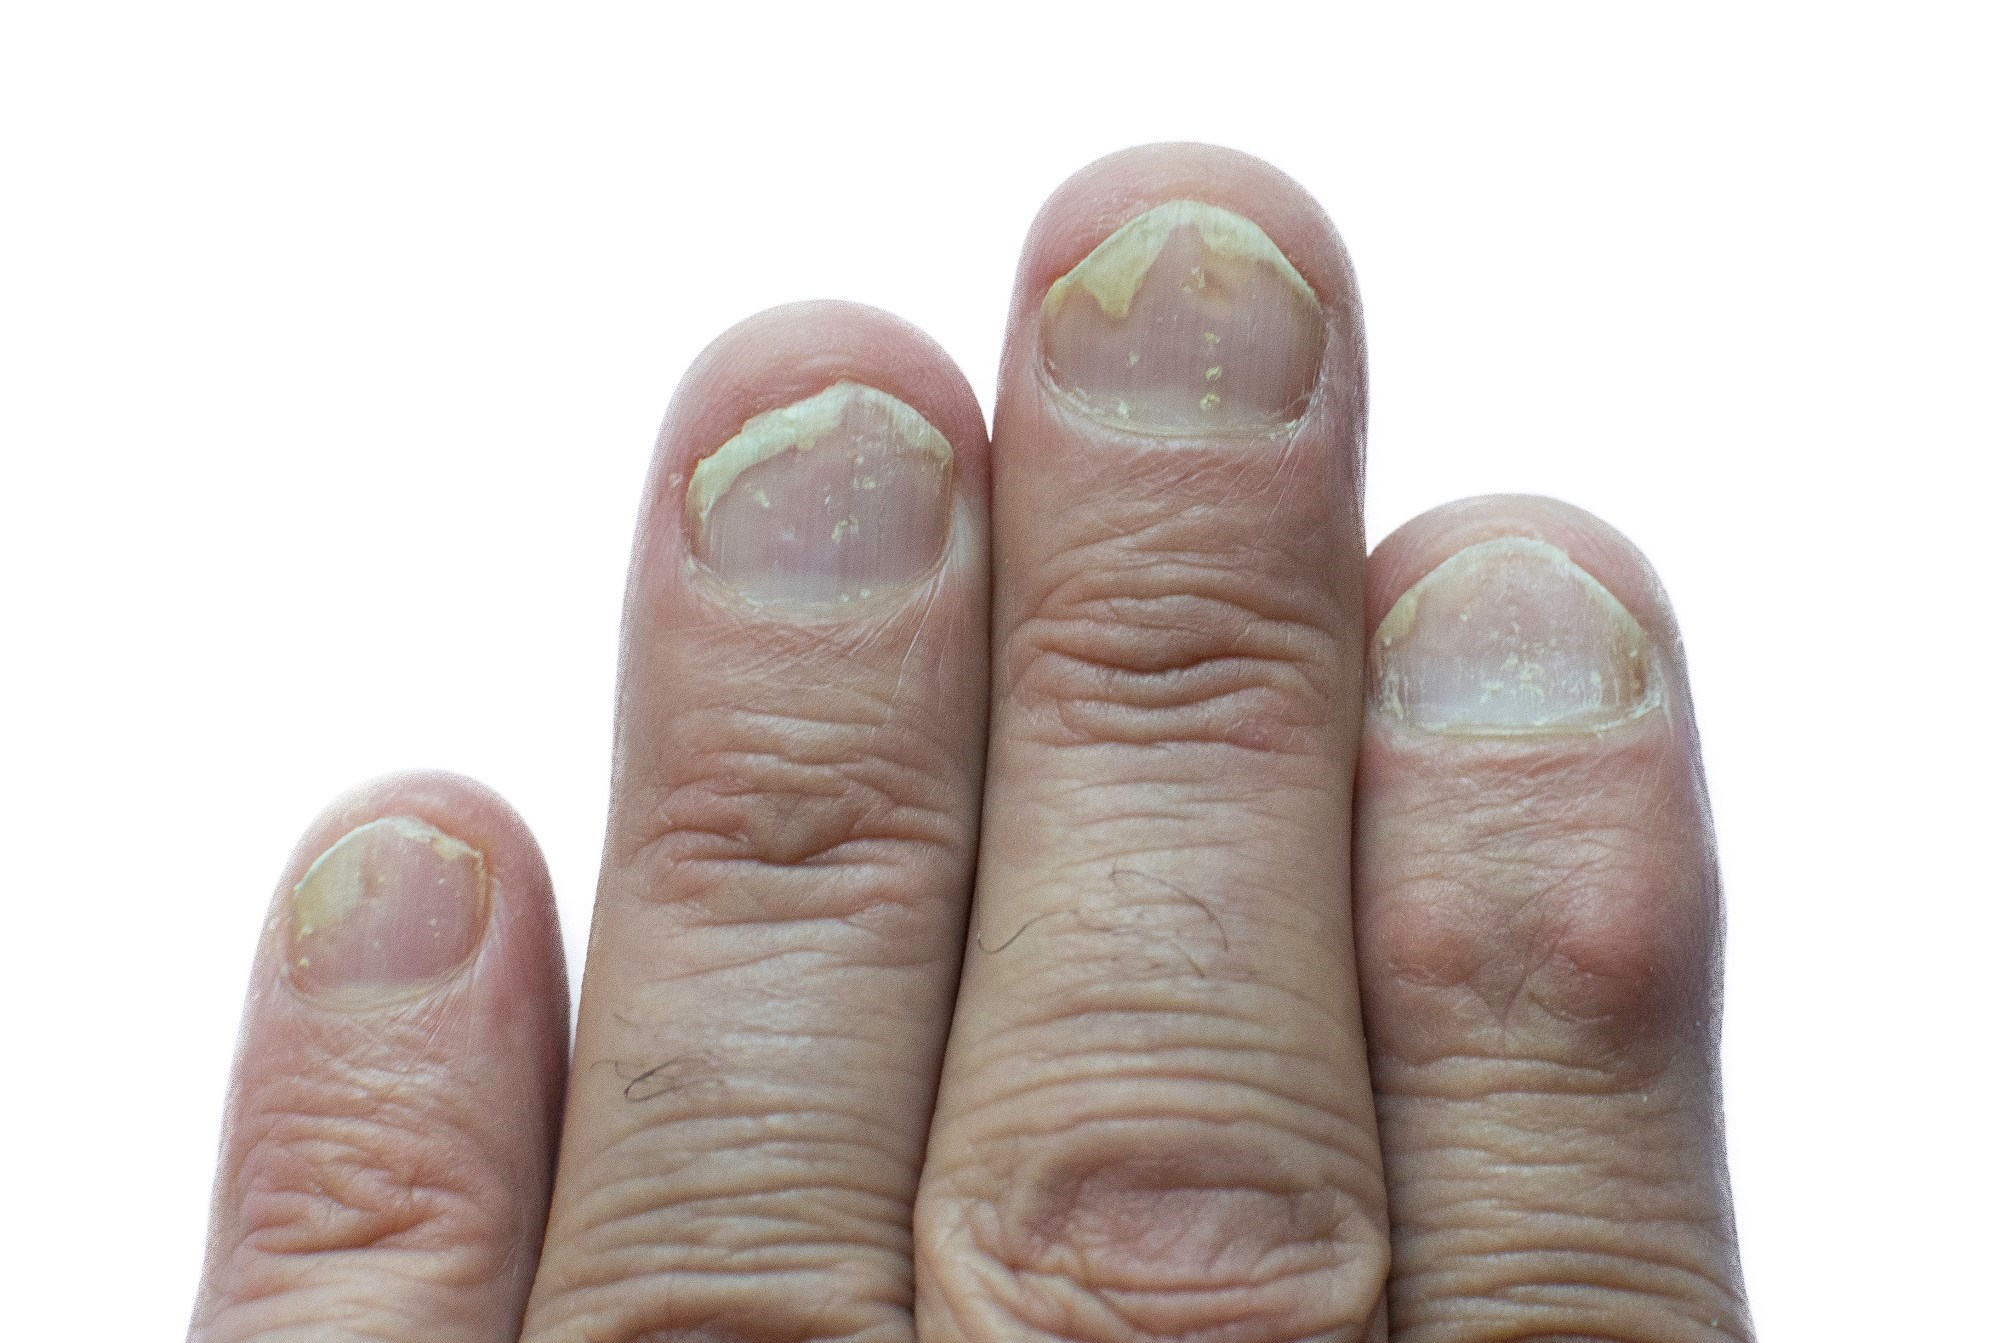 Secukinumab Superior to Placebo for Treatment of Moderate to Severe Nail Psoriasis